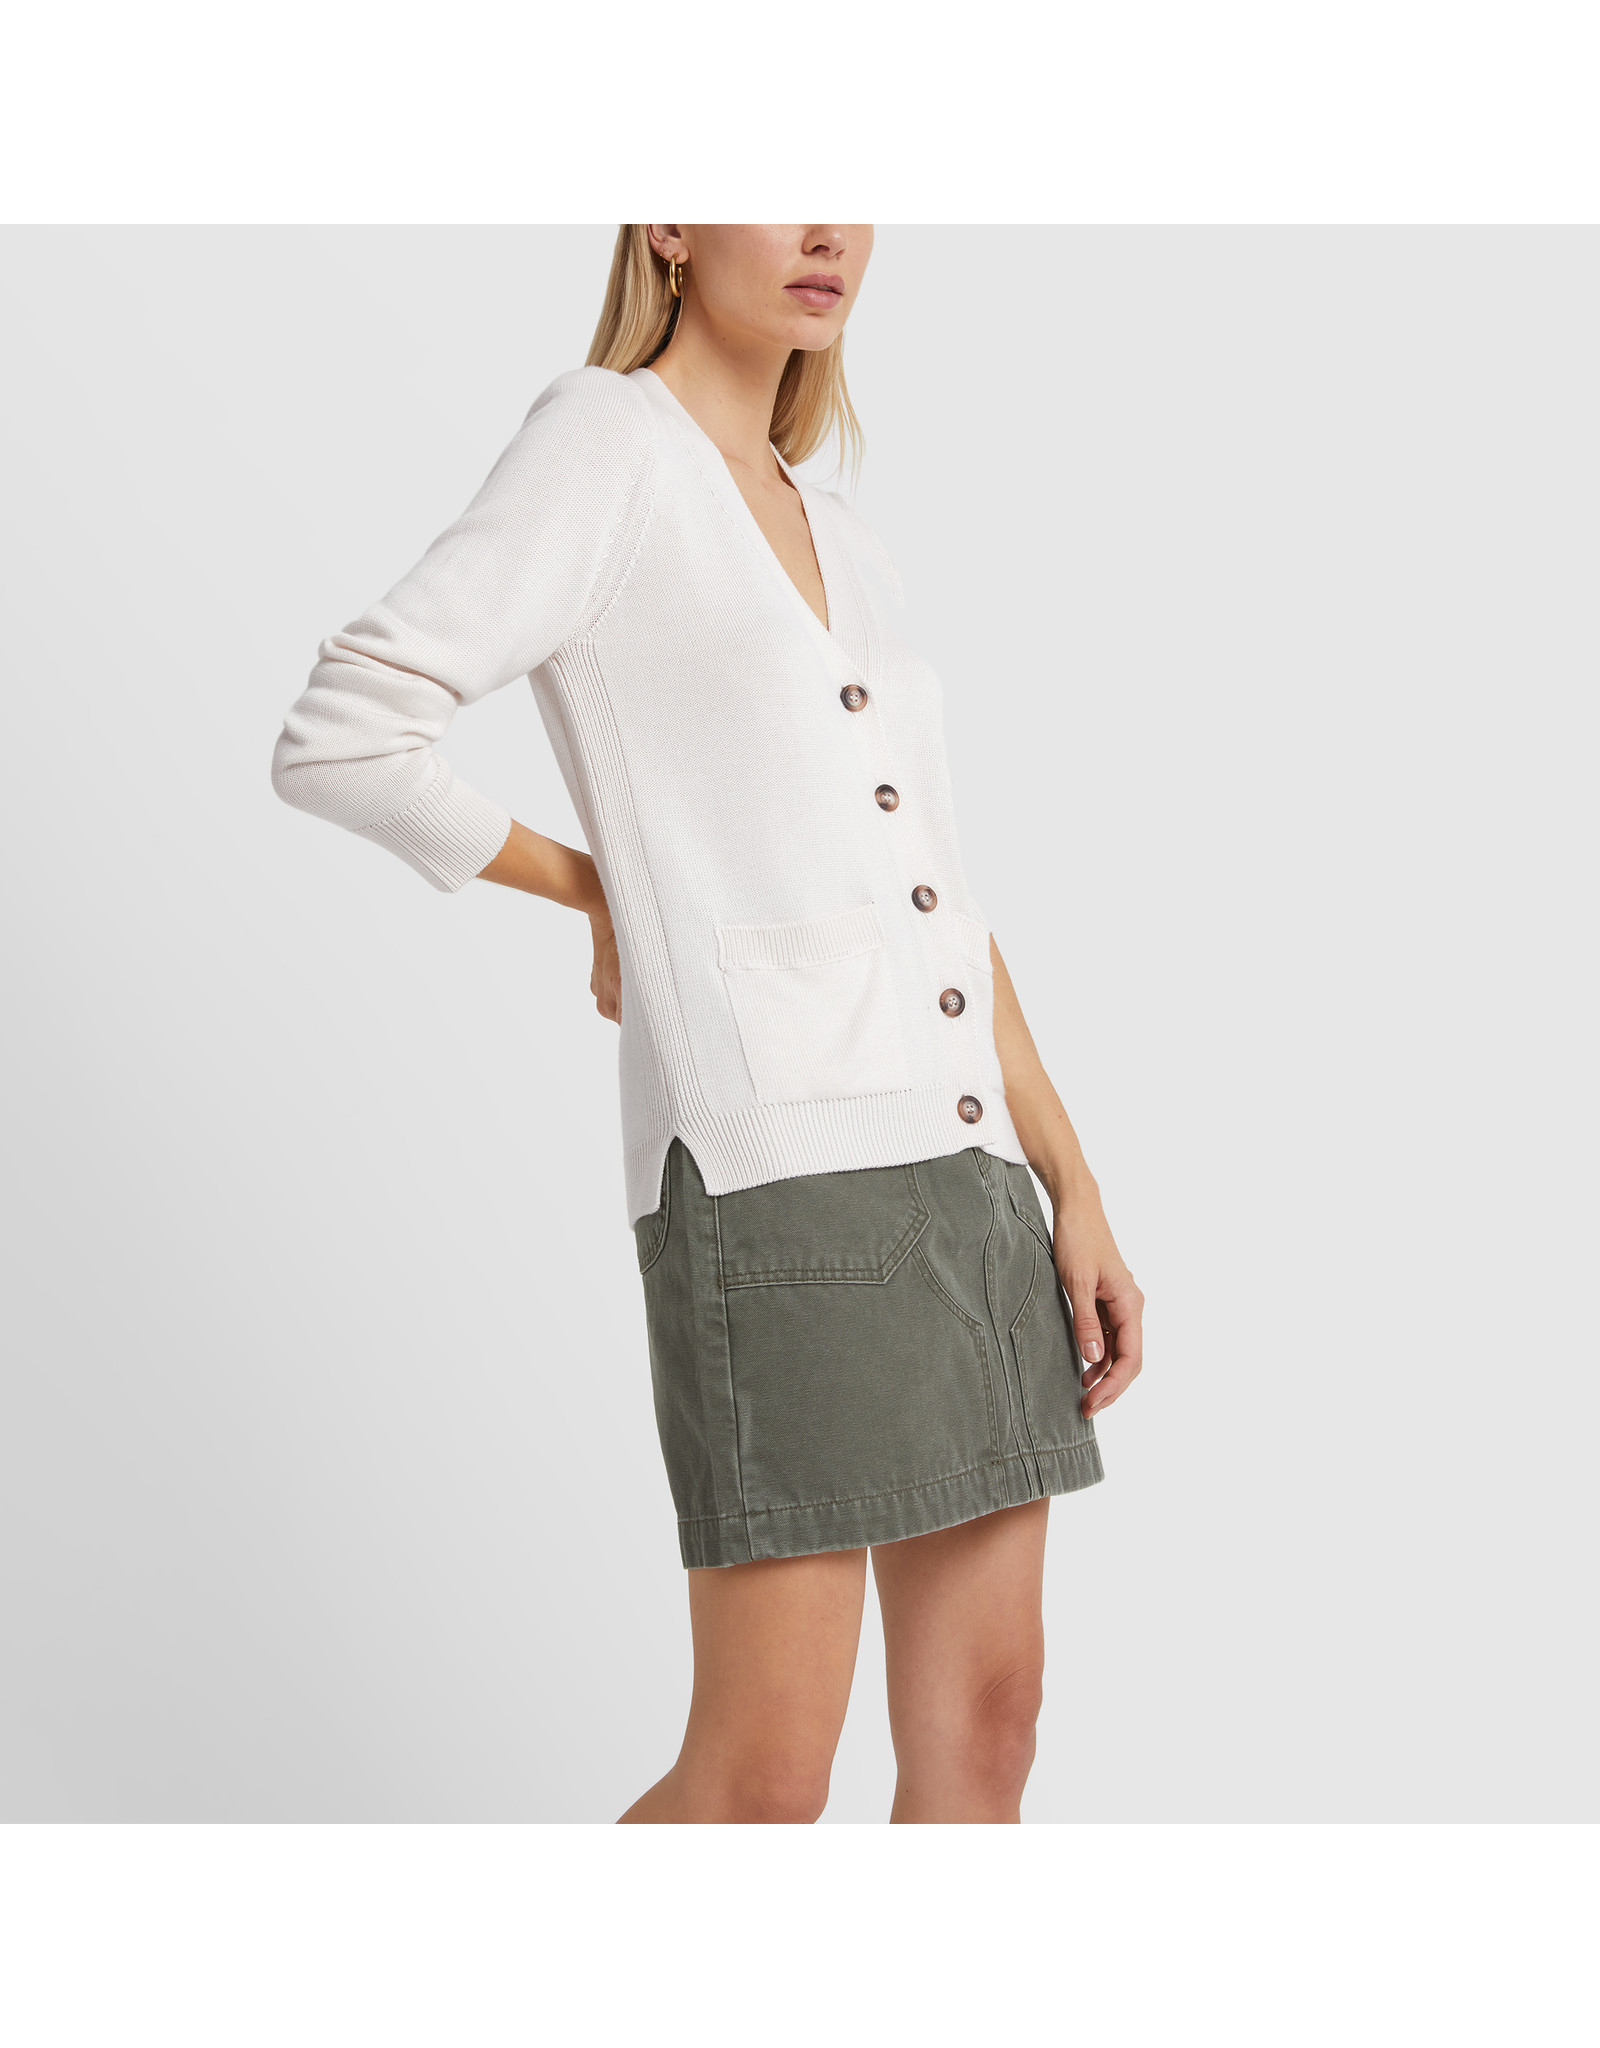 G. Label G. Label Lightweight Erica Cardigan (Color: White, Size: L)